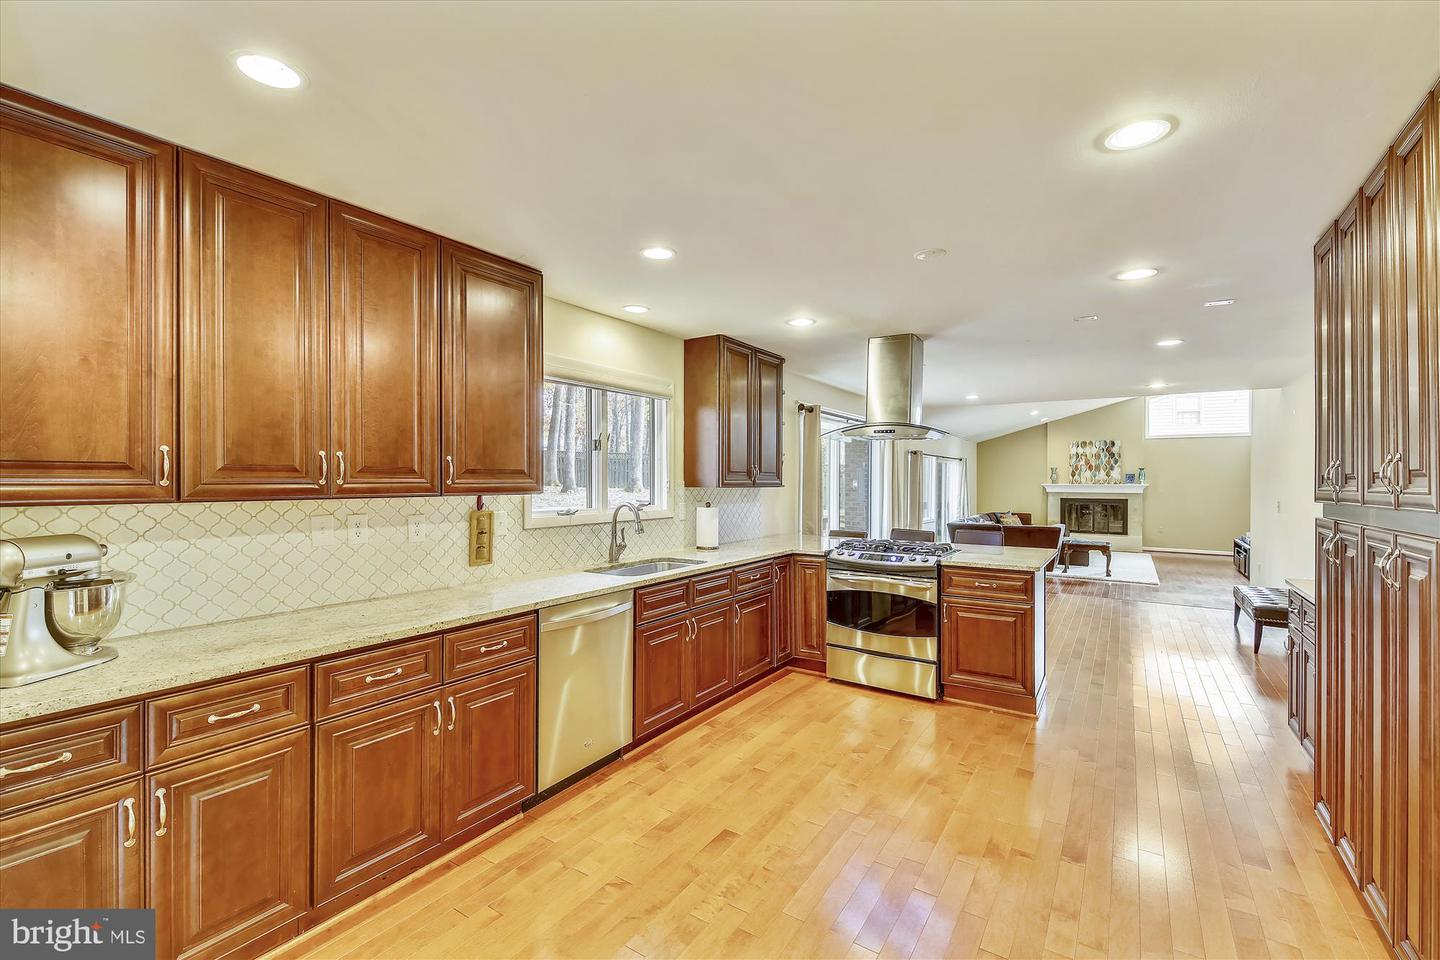 11137 POWDER HORN DRIVE, POTOMAC, Maryland